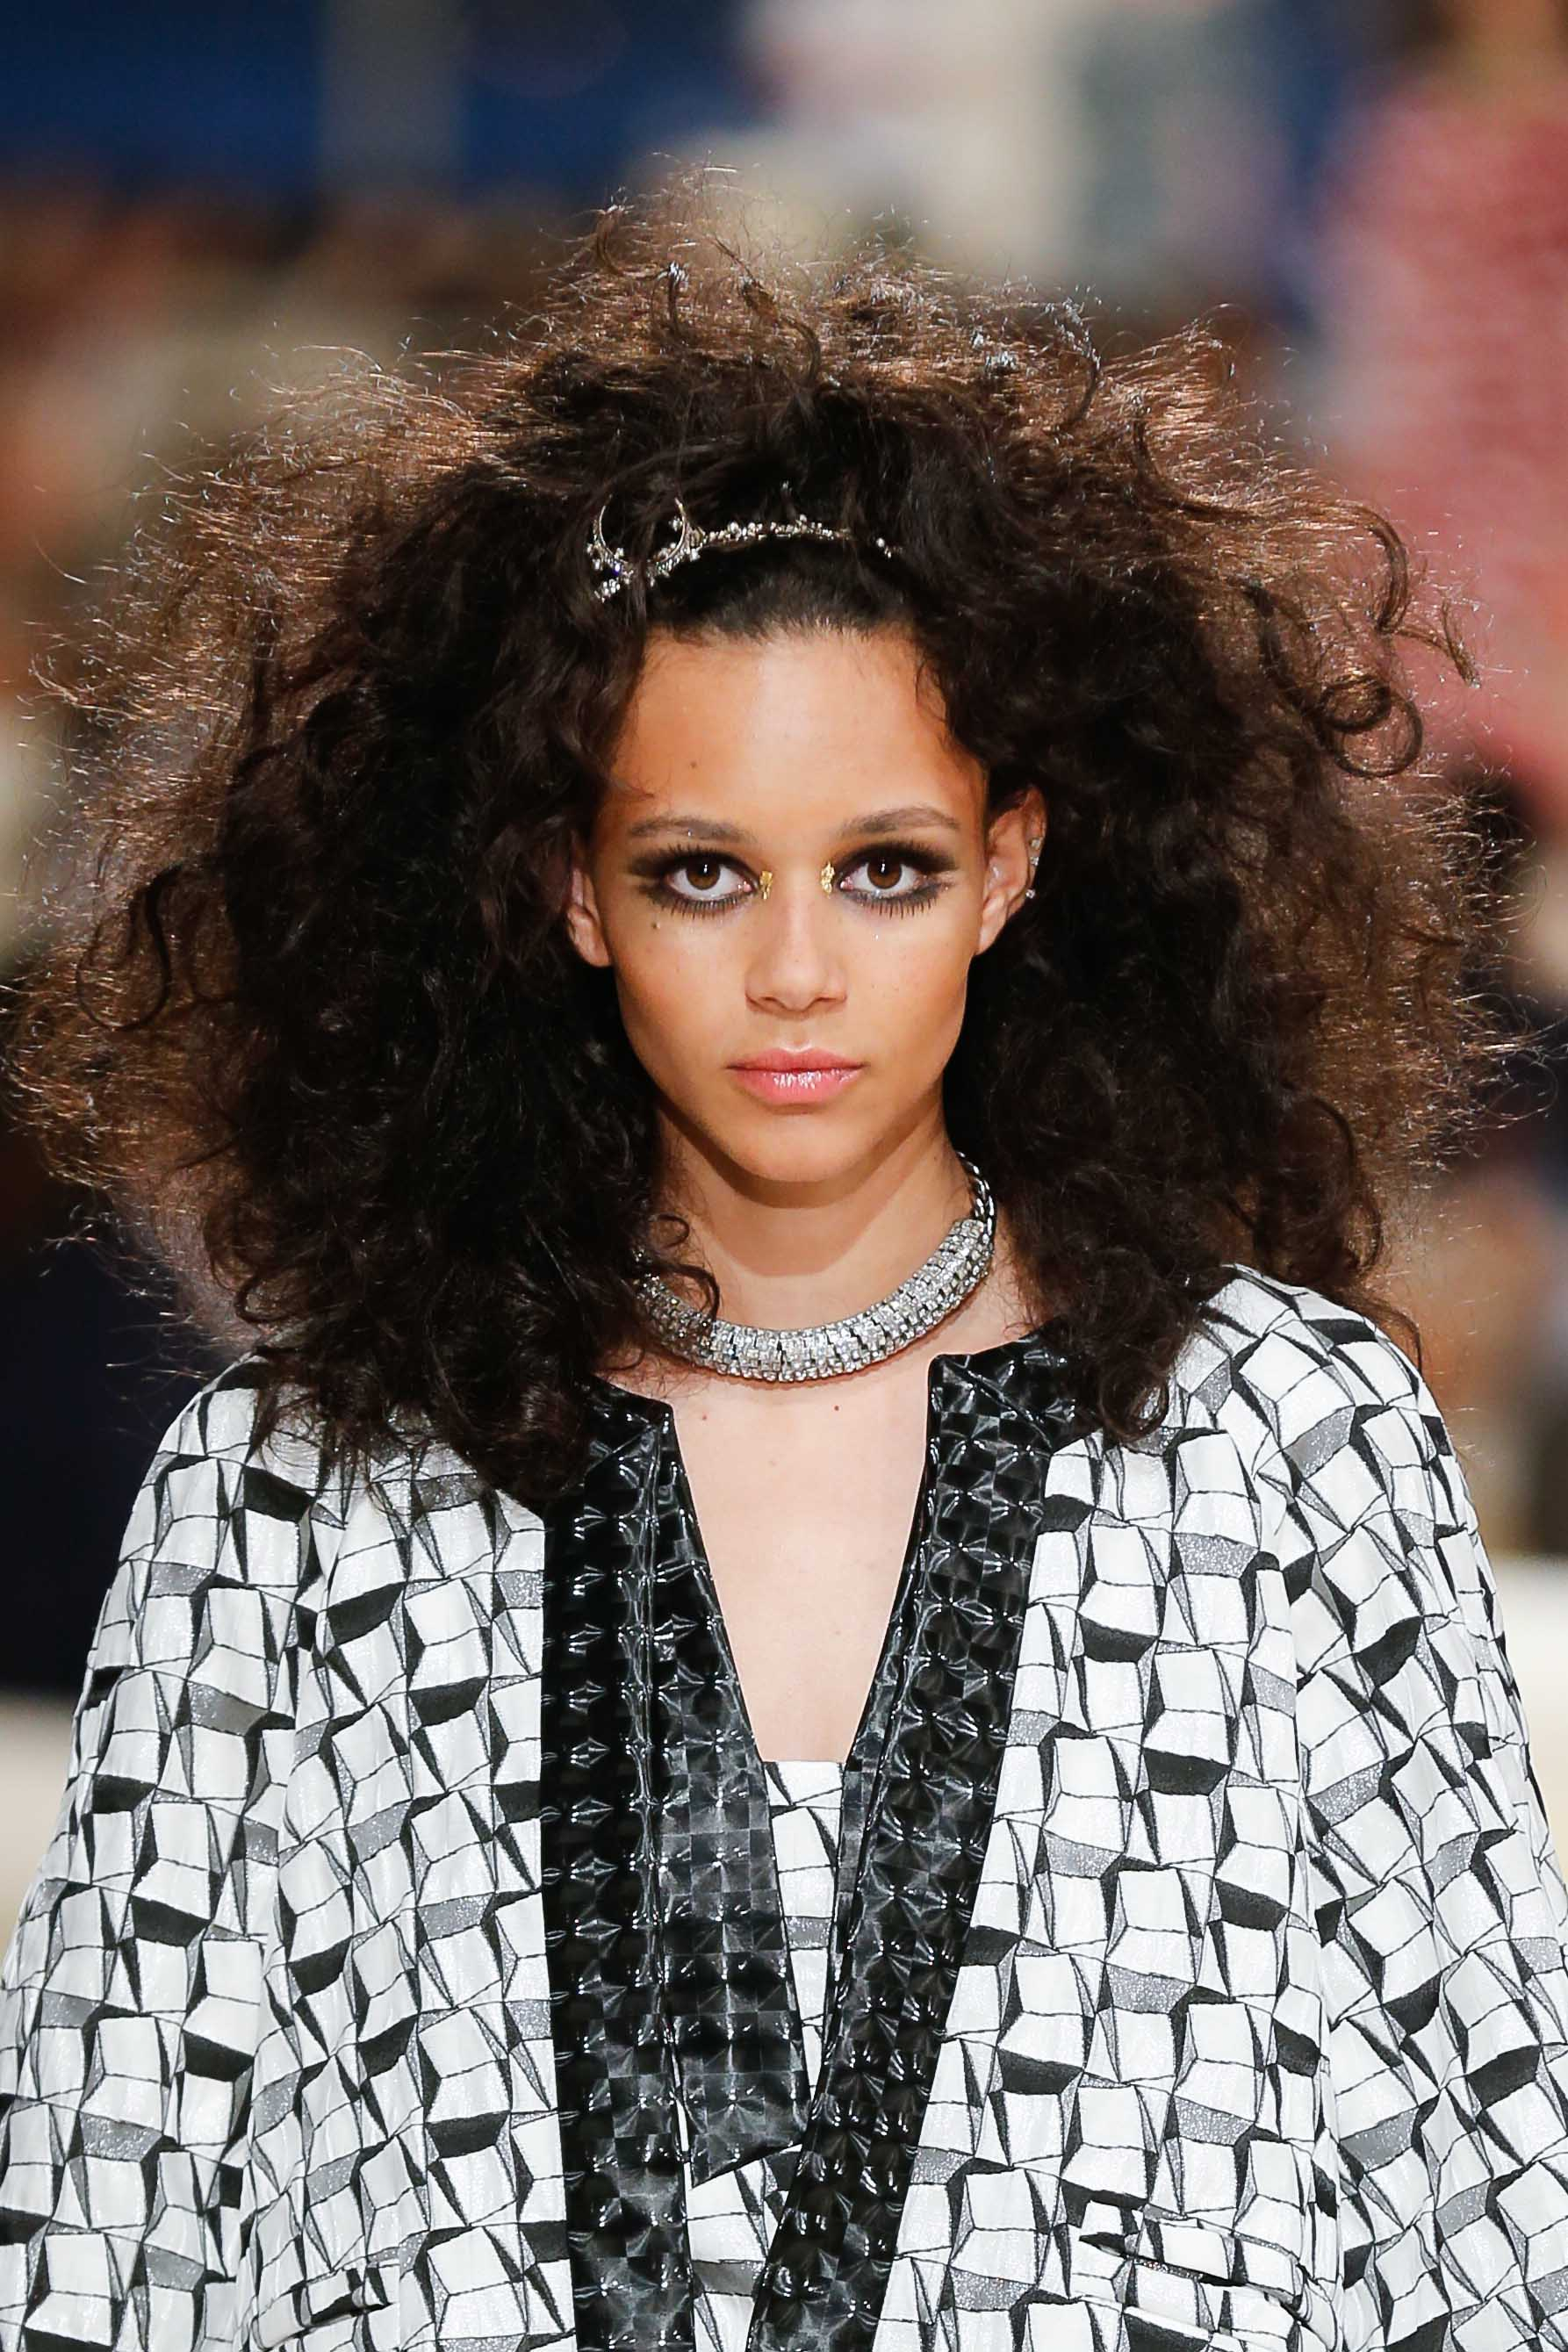 Naturally Curly Hair Ideas: 7 Easy Styles for Every Curl Type